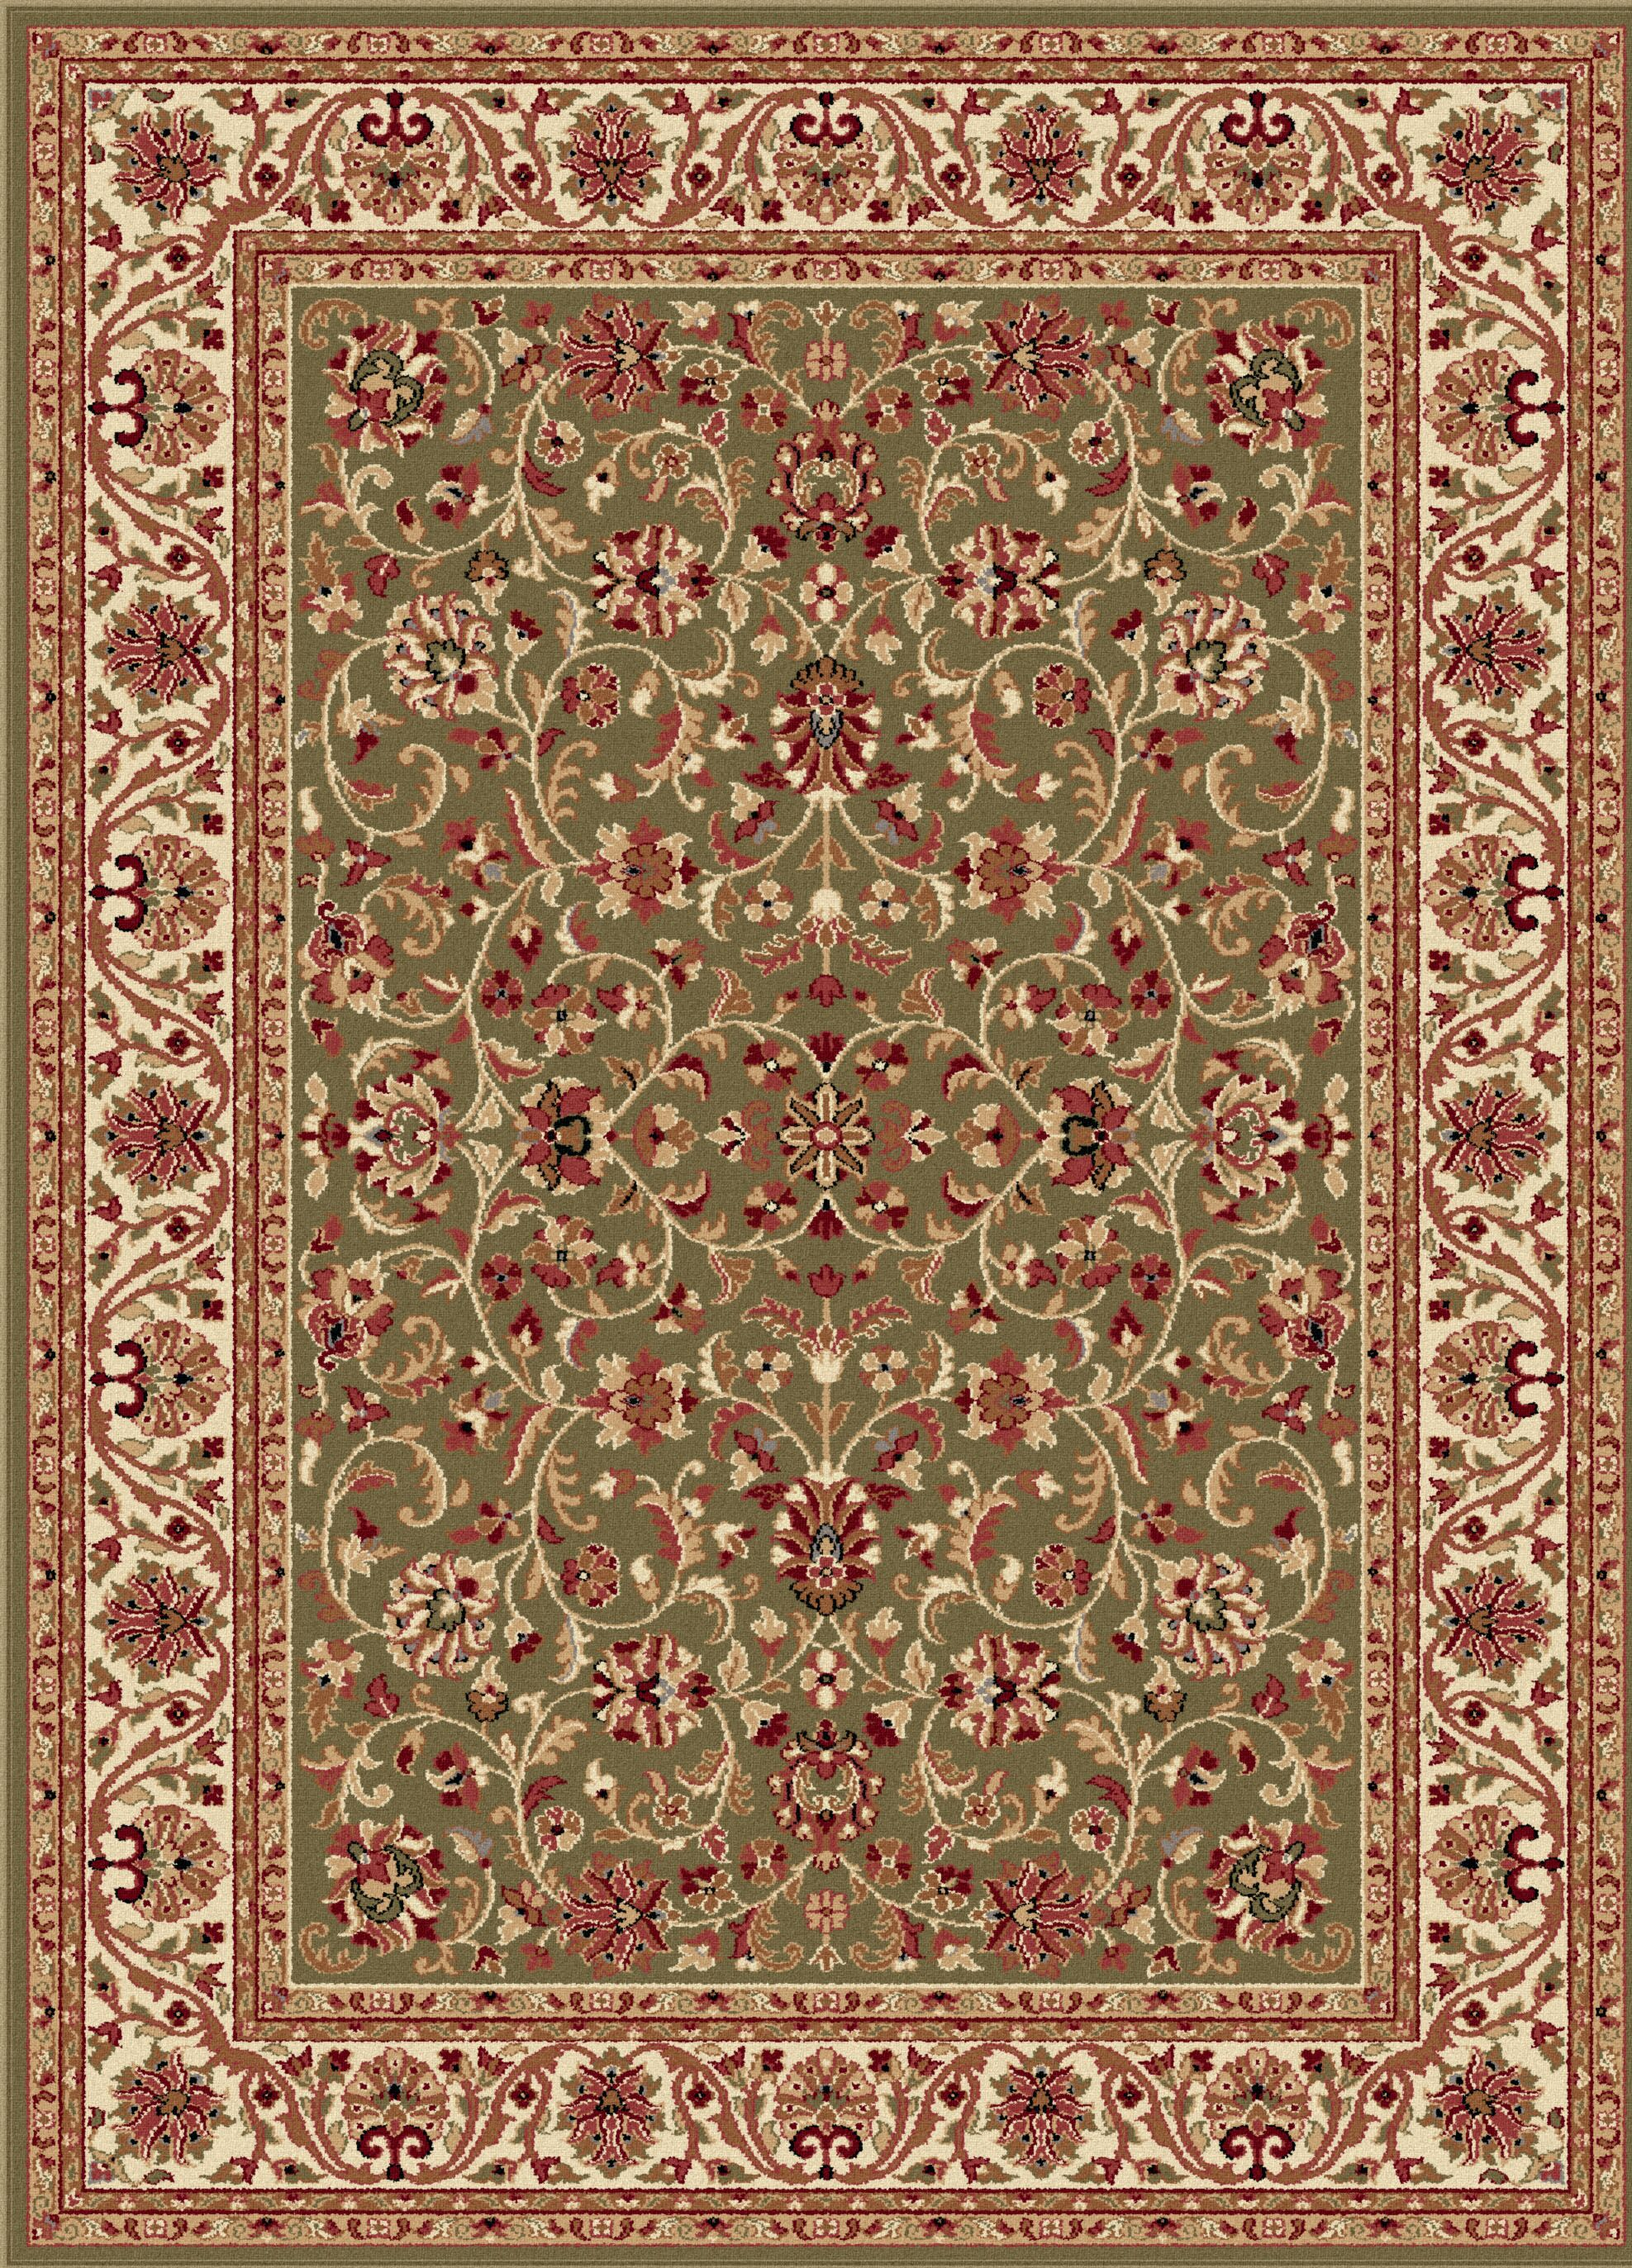 Clarence Green Area Rug Rug Size: 10'6'' x 14'6''